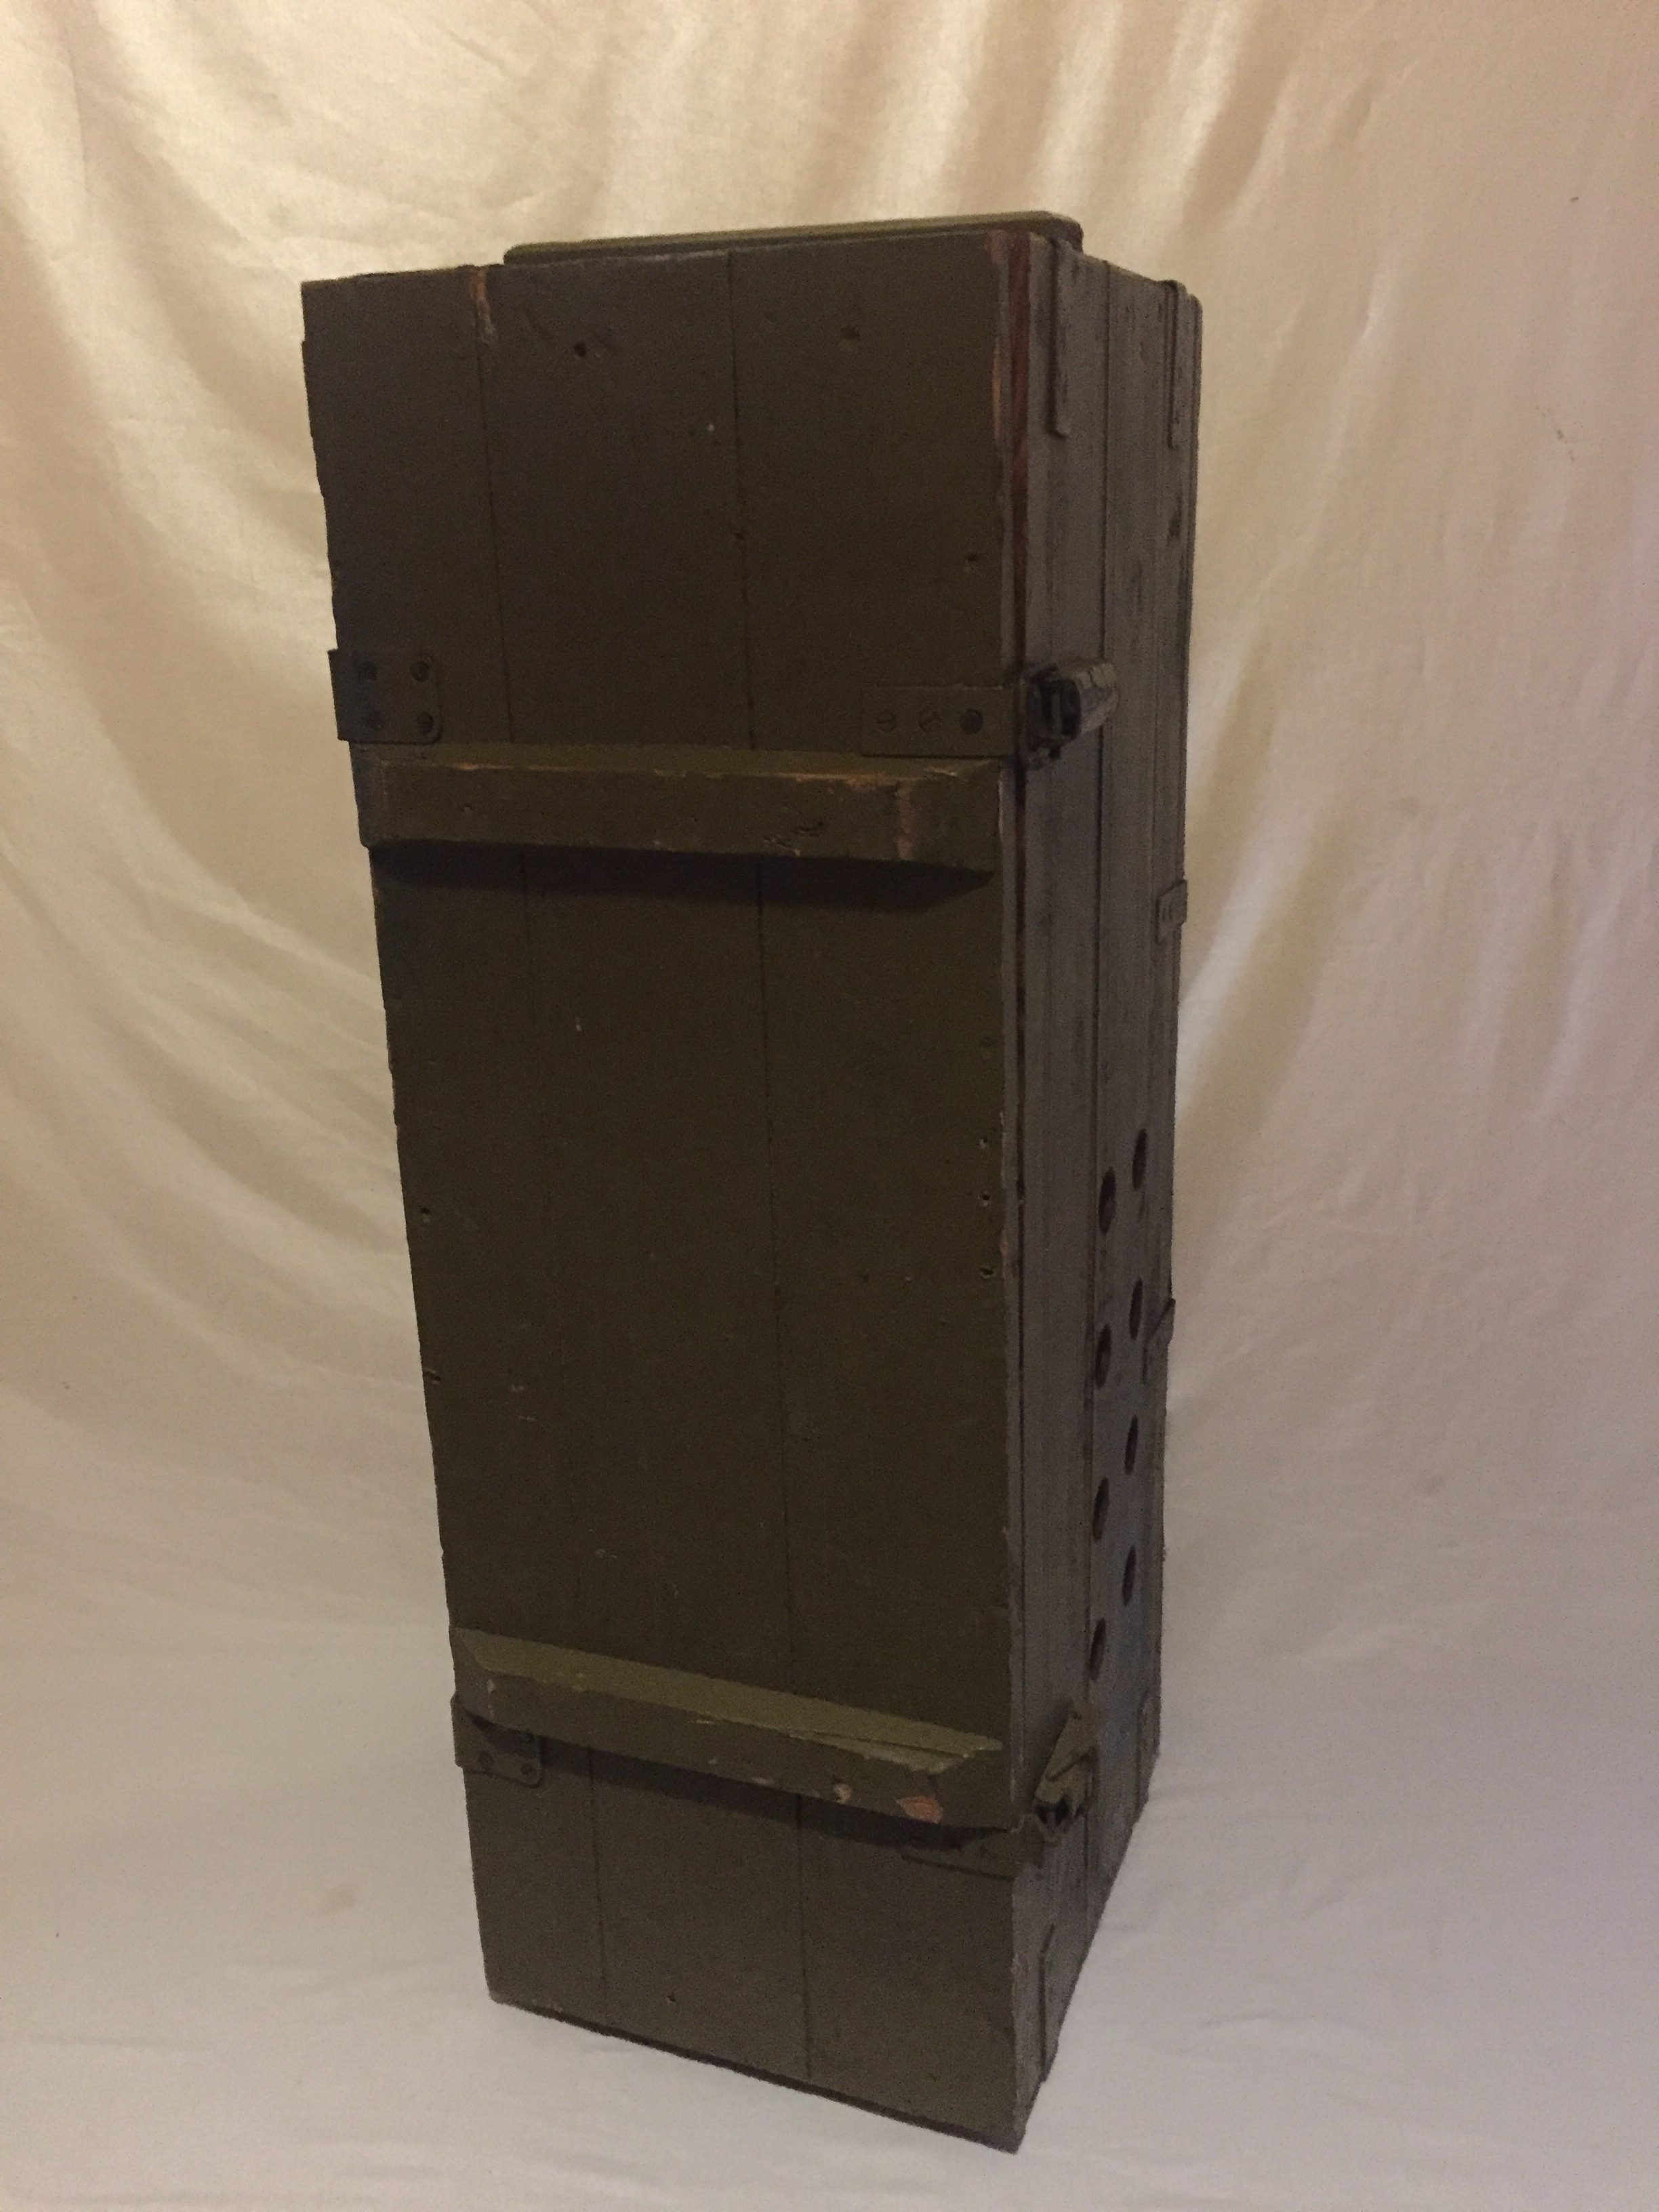 ideas cabinets ammo and ammunition gallery cabinet box storage container